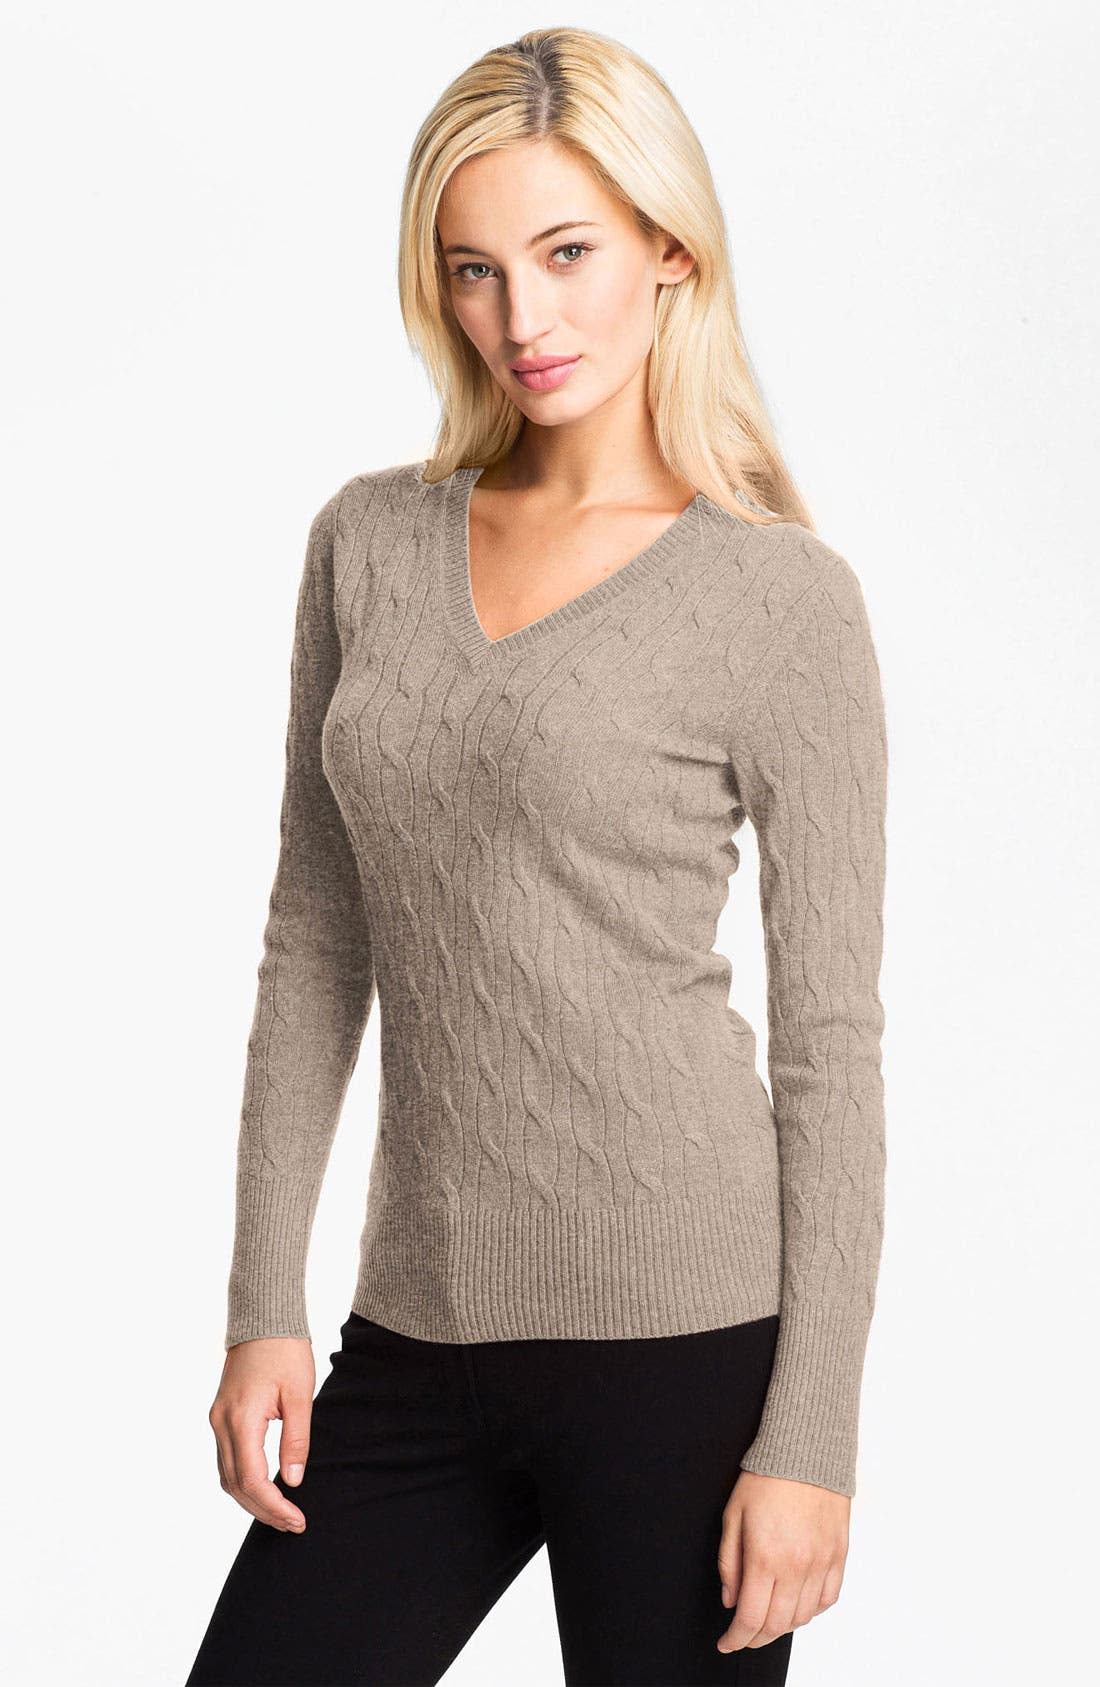 Alternate Image 1 Selected - Christopher Fischer 'Elisa' Cable Cashmere Sweater (Online Exclusive)